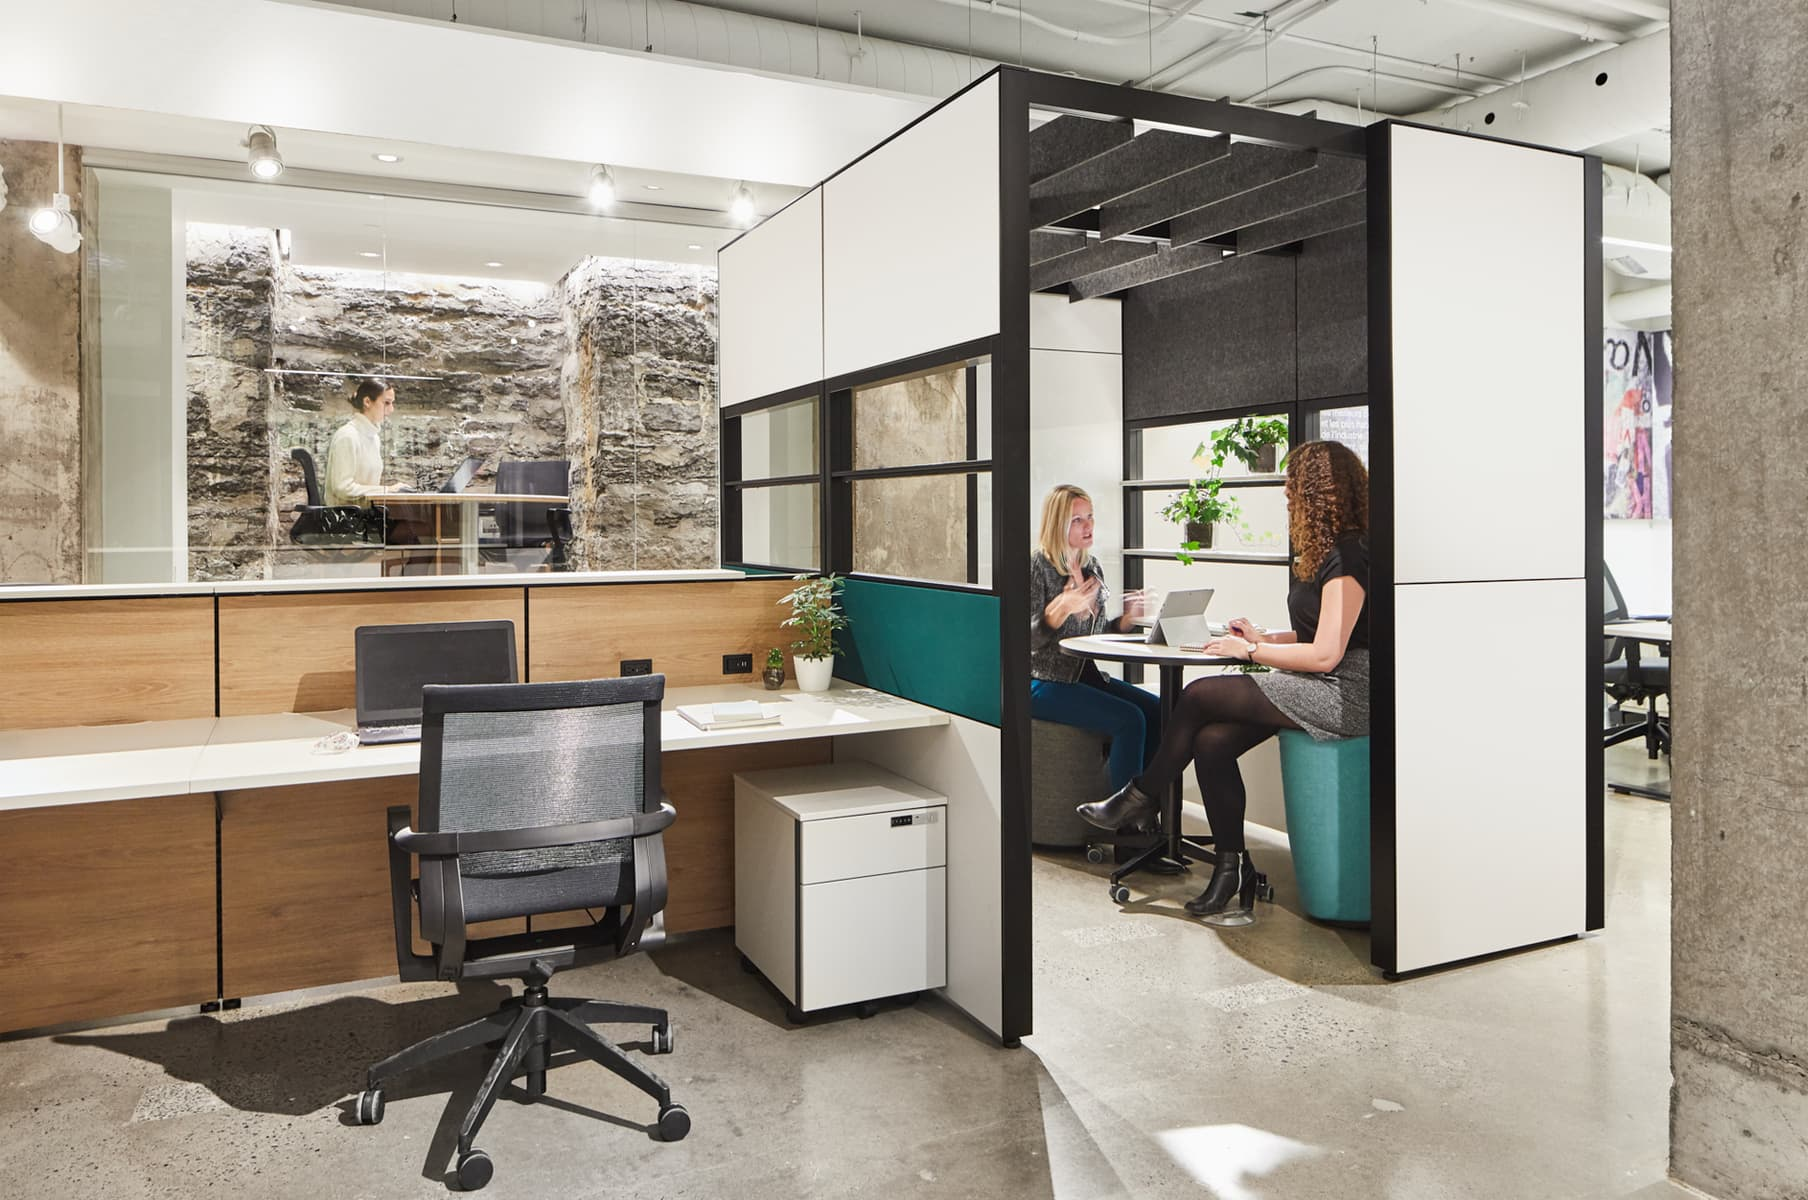 Workspace Design that support Corporate Goals by getting workers engaged